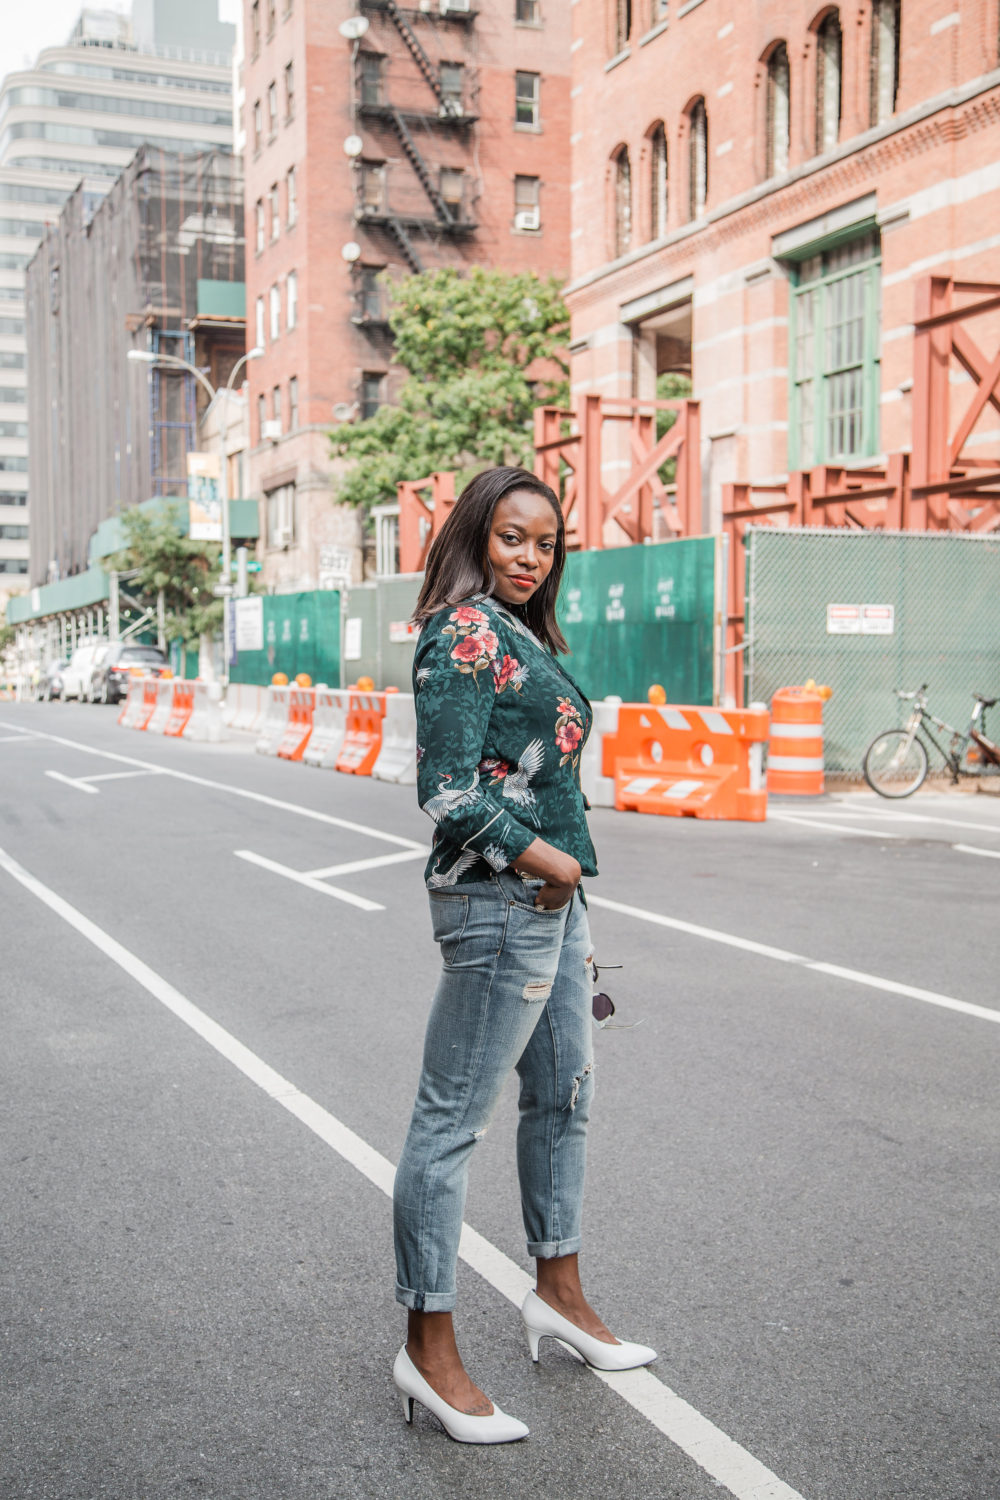 7 STYLE LESSONS FROM NEW YORK FASHION WEEK YOU CAN WEAR NOW